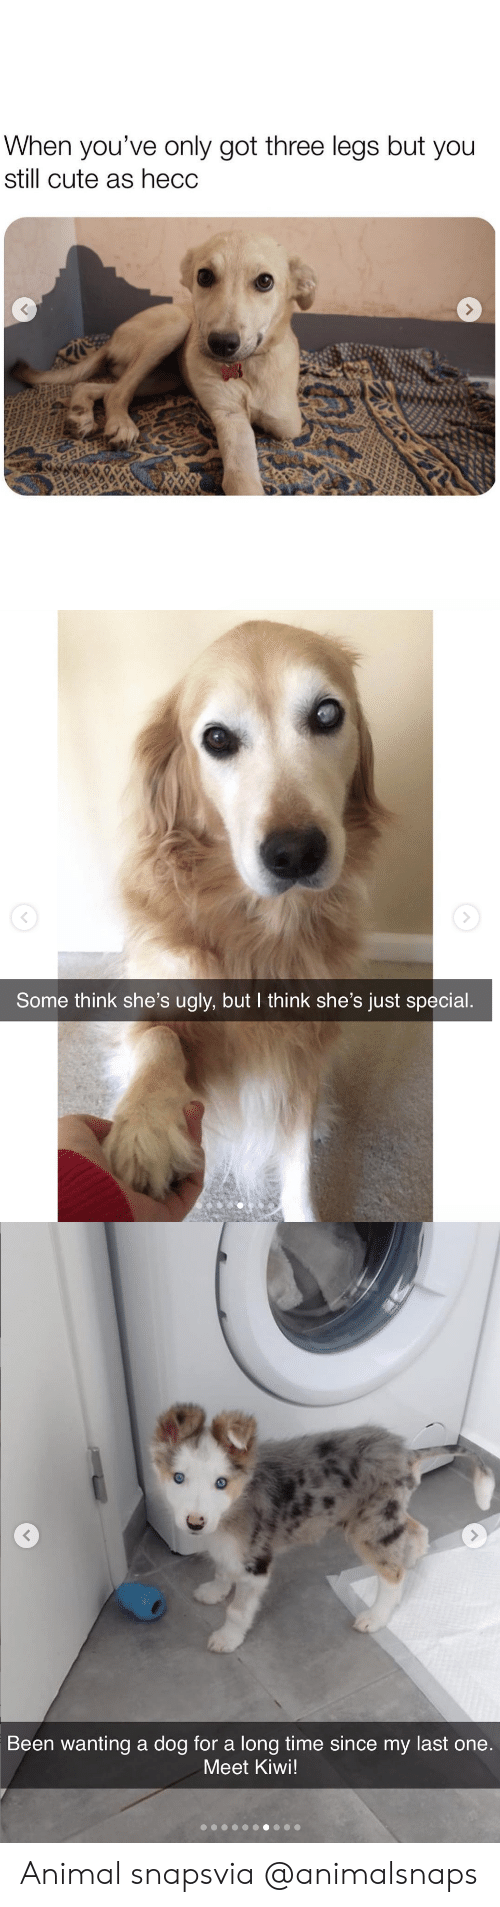 Cute, Target, and Tumblr: When you've only got three legs but you  still cute as hecc   Some think she's ugly, but I think she's just special.   Been wanting a dog for a long time since my last one  Meet Kiwi! Animal snapsvia @animalsnaps